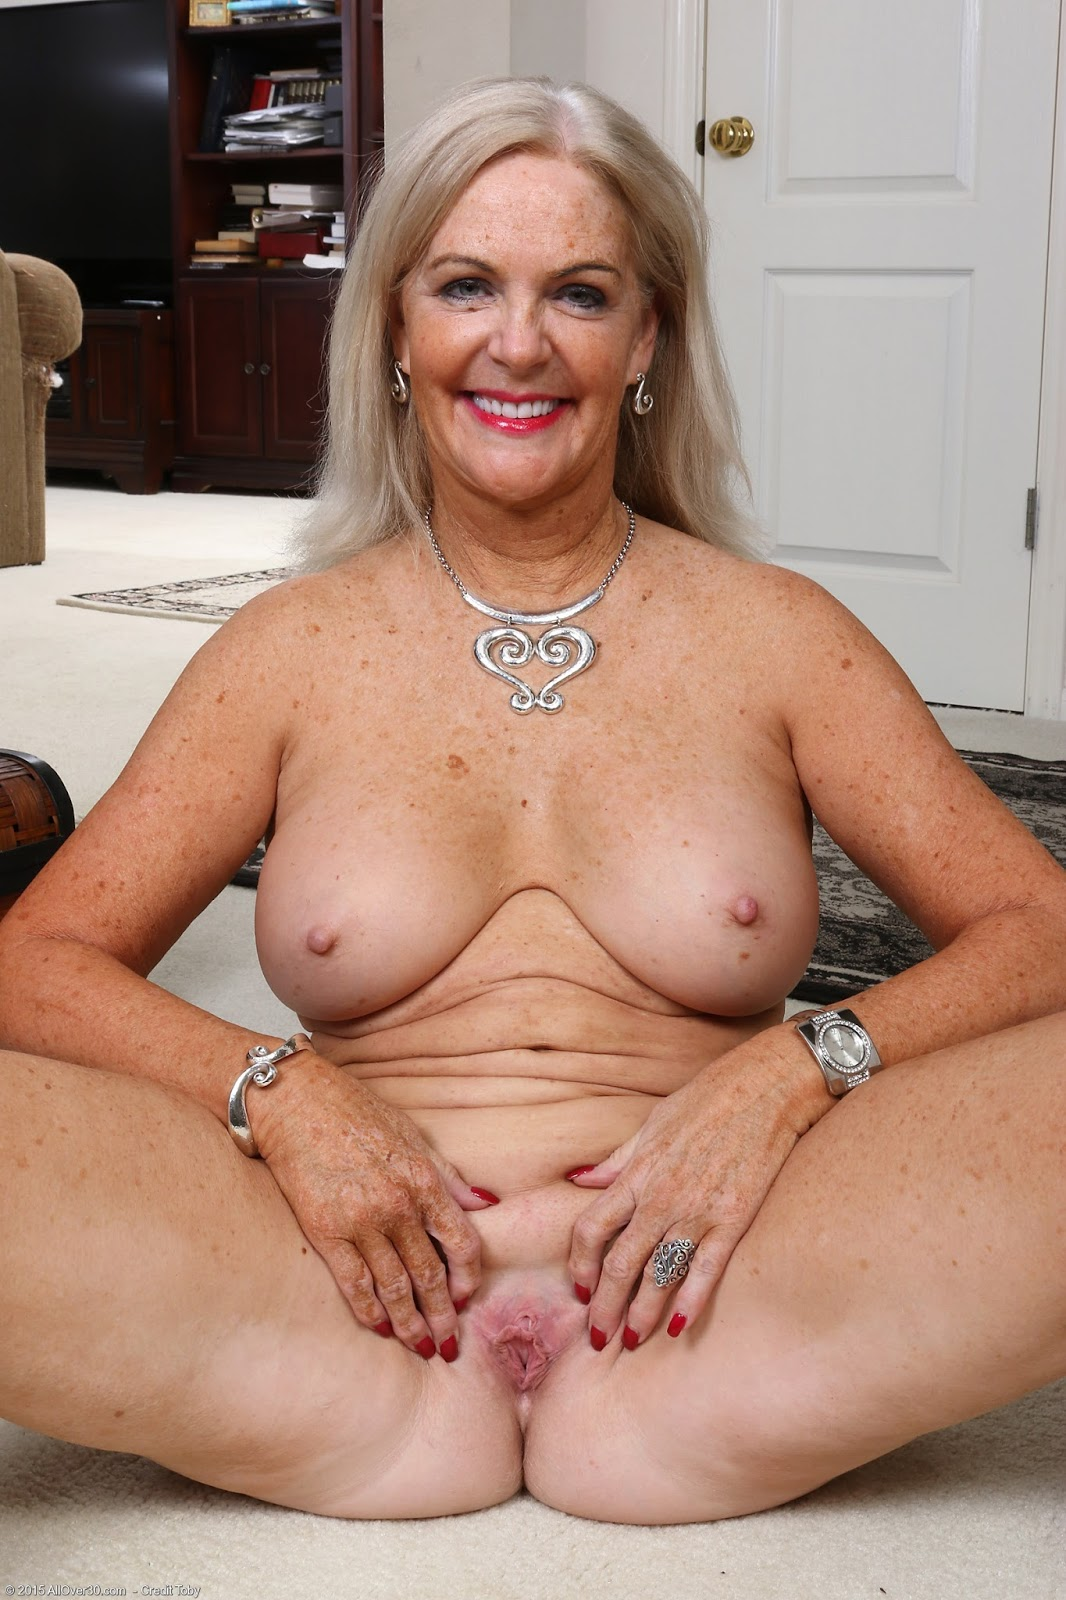 Women attractive gallery mature